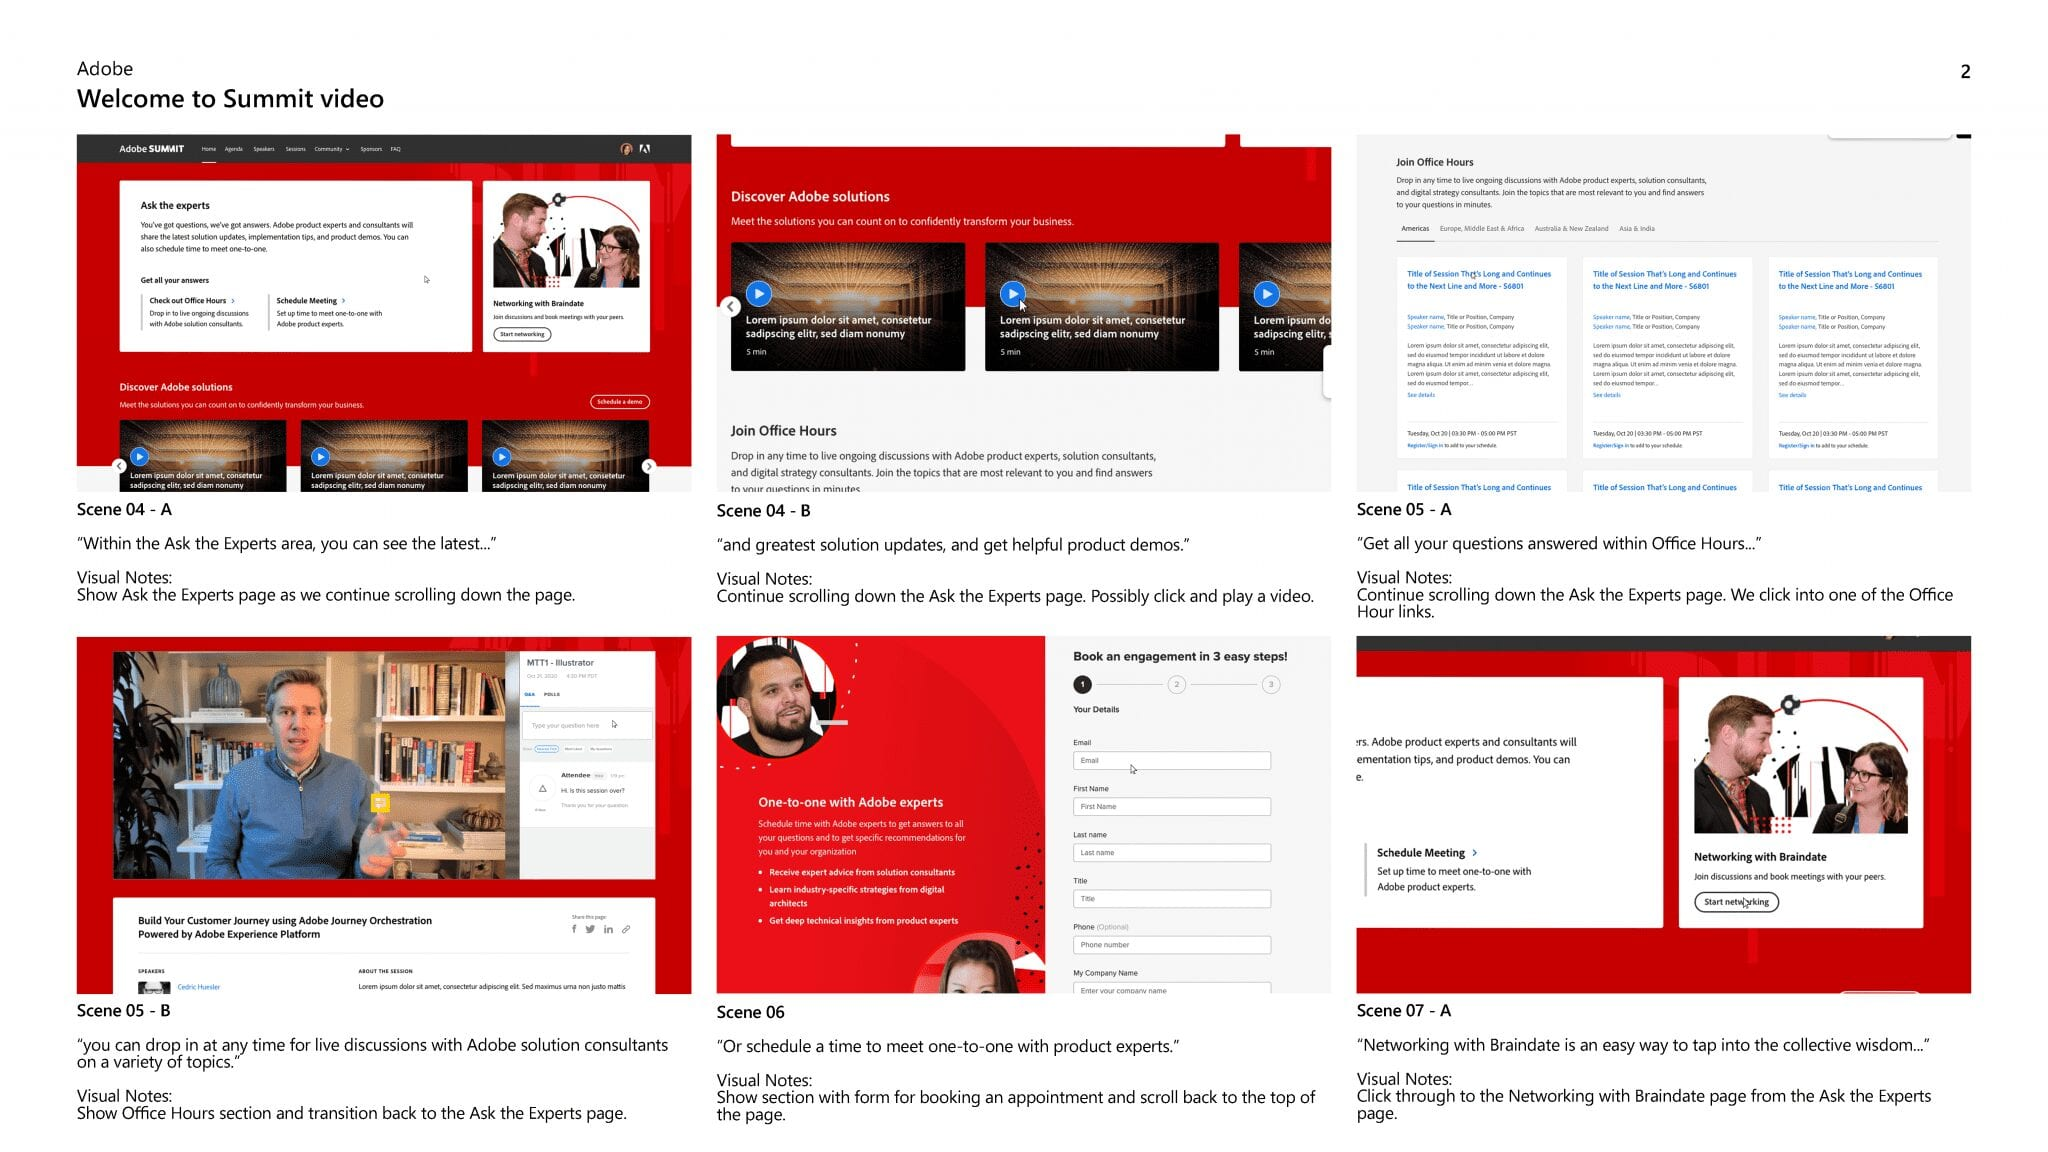 Adobe-Welcome-To-Summit-Video-V4_Page_03